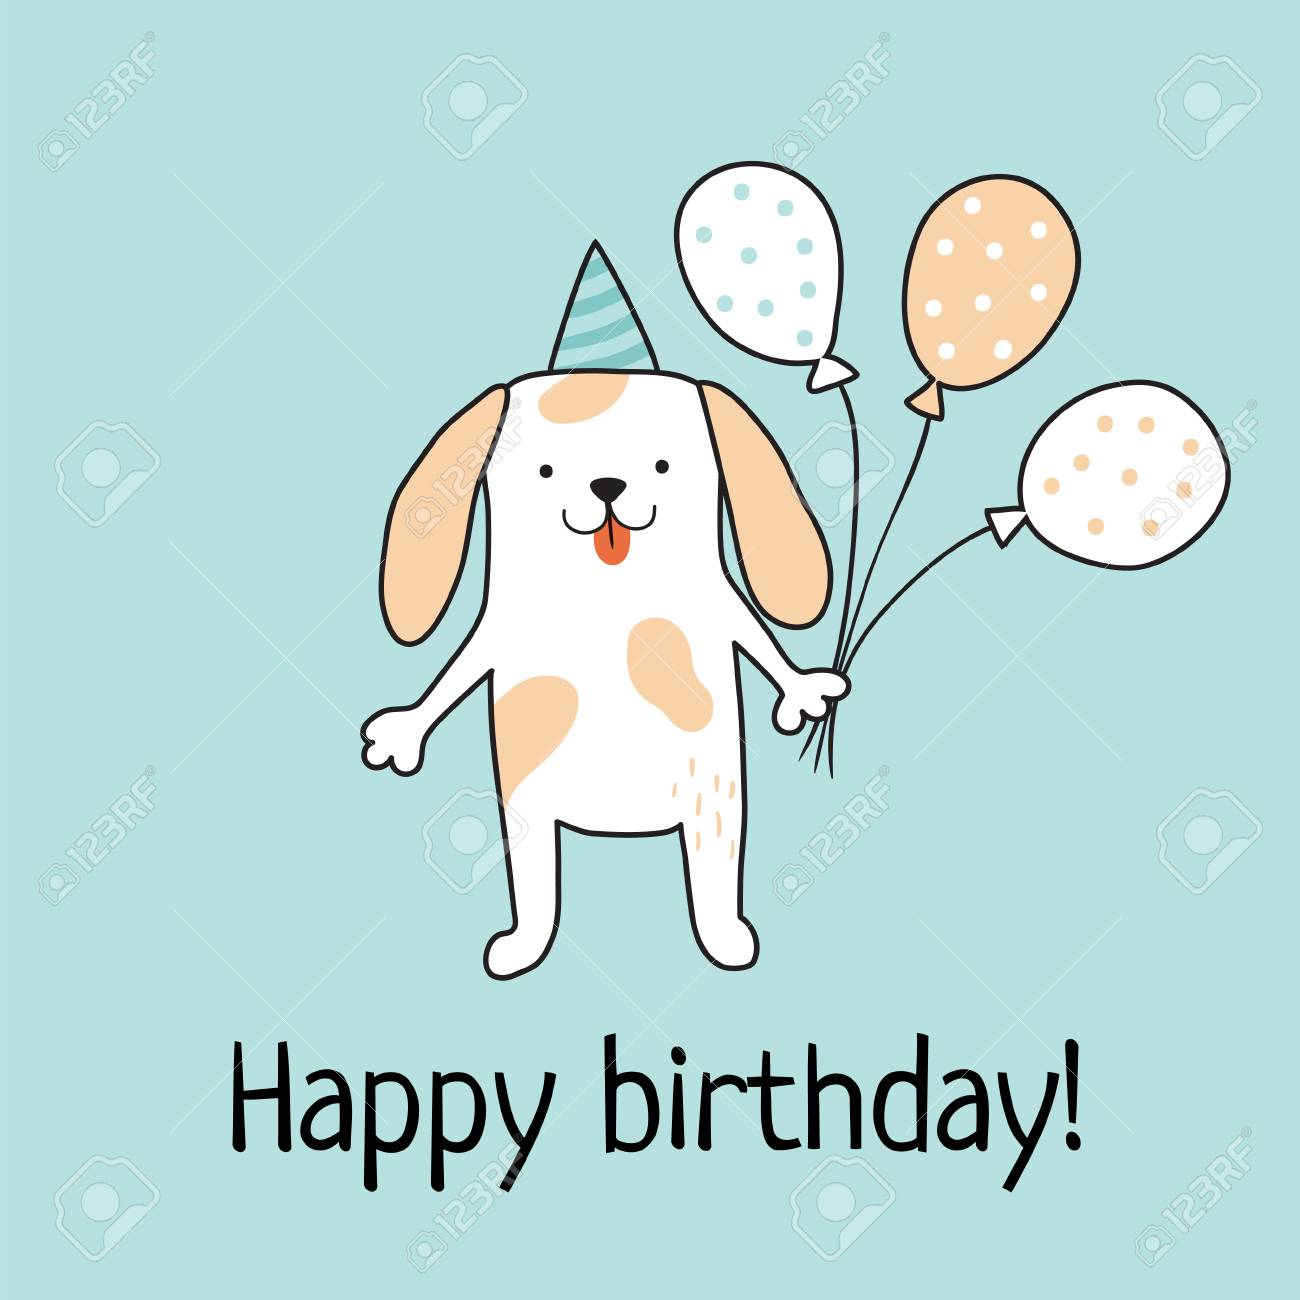 Vector Template Of A Birthday Card Cute Dog Holding Baloons Royalty Free Cliparts Vectors And Stock Illustration Image 69772526